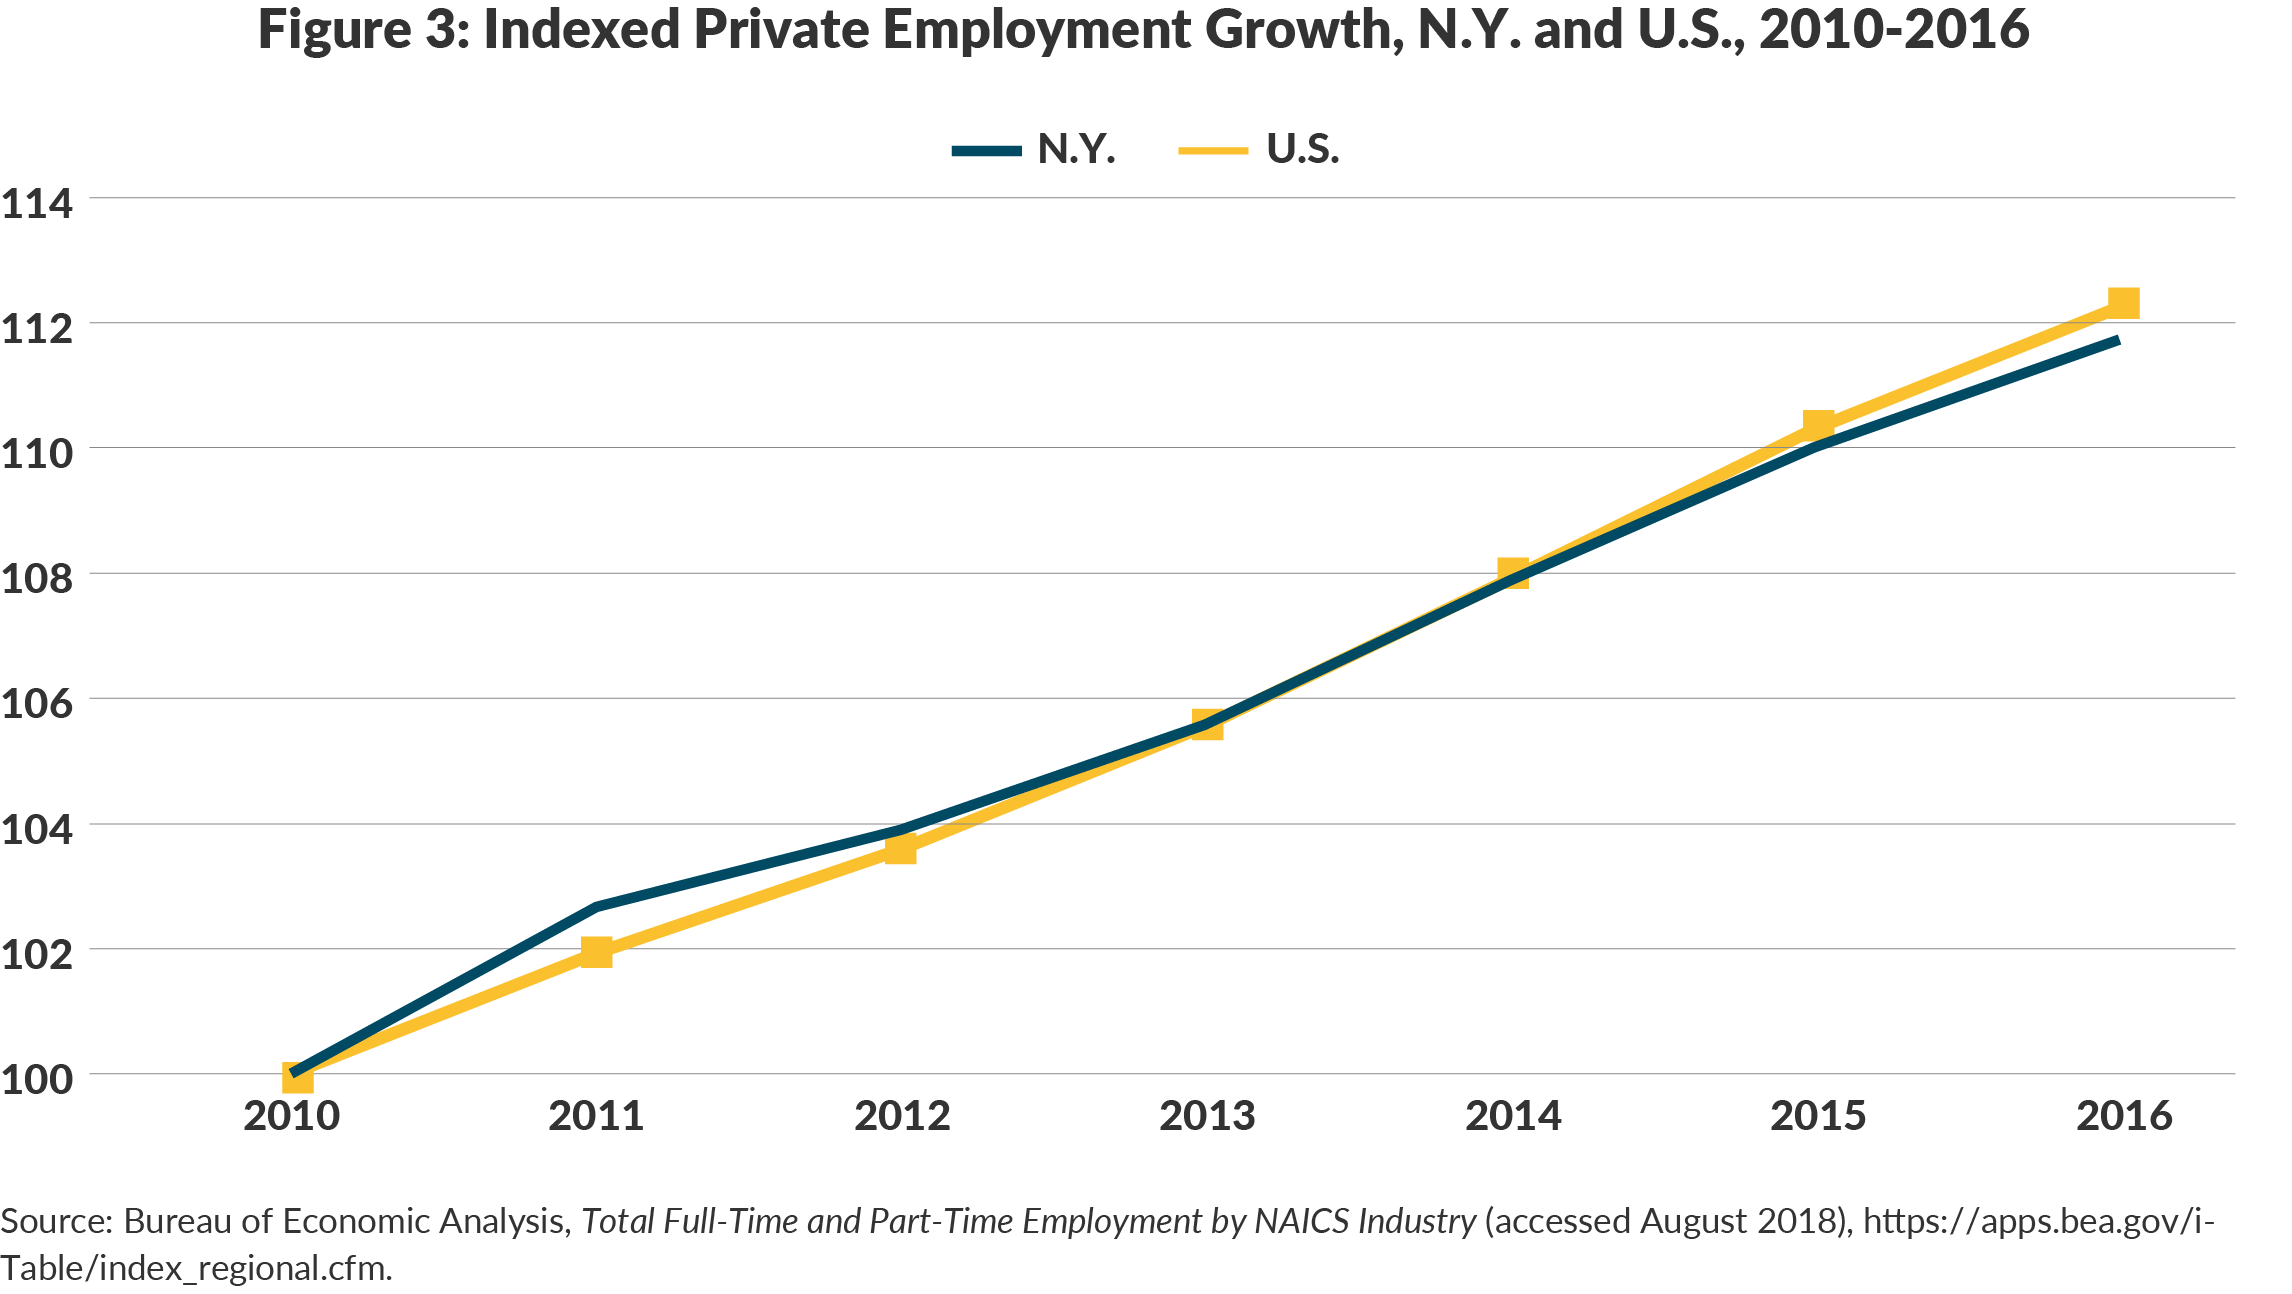 Figure 3: Indexed Private Employment Growth, N.Y. and U.S., 2010-2016